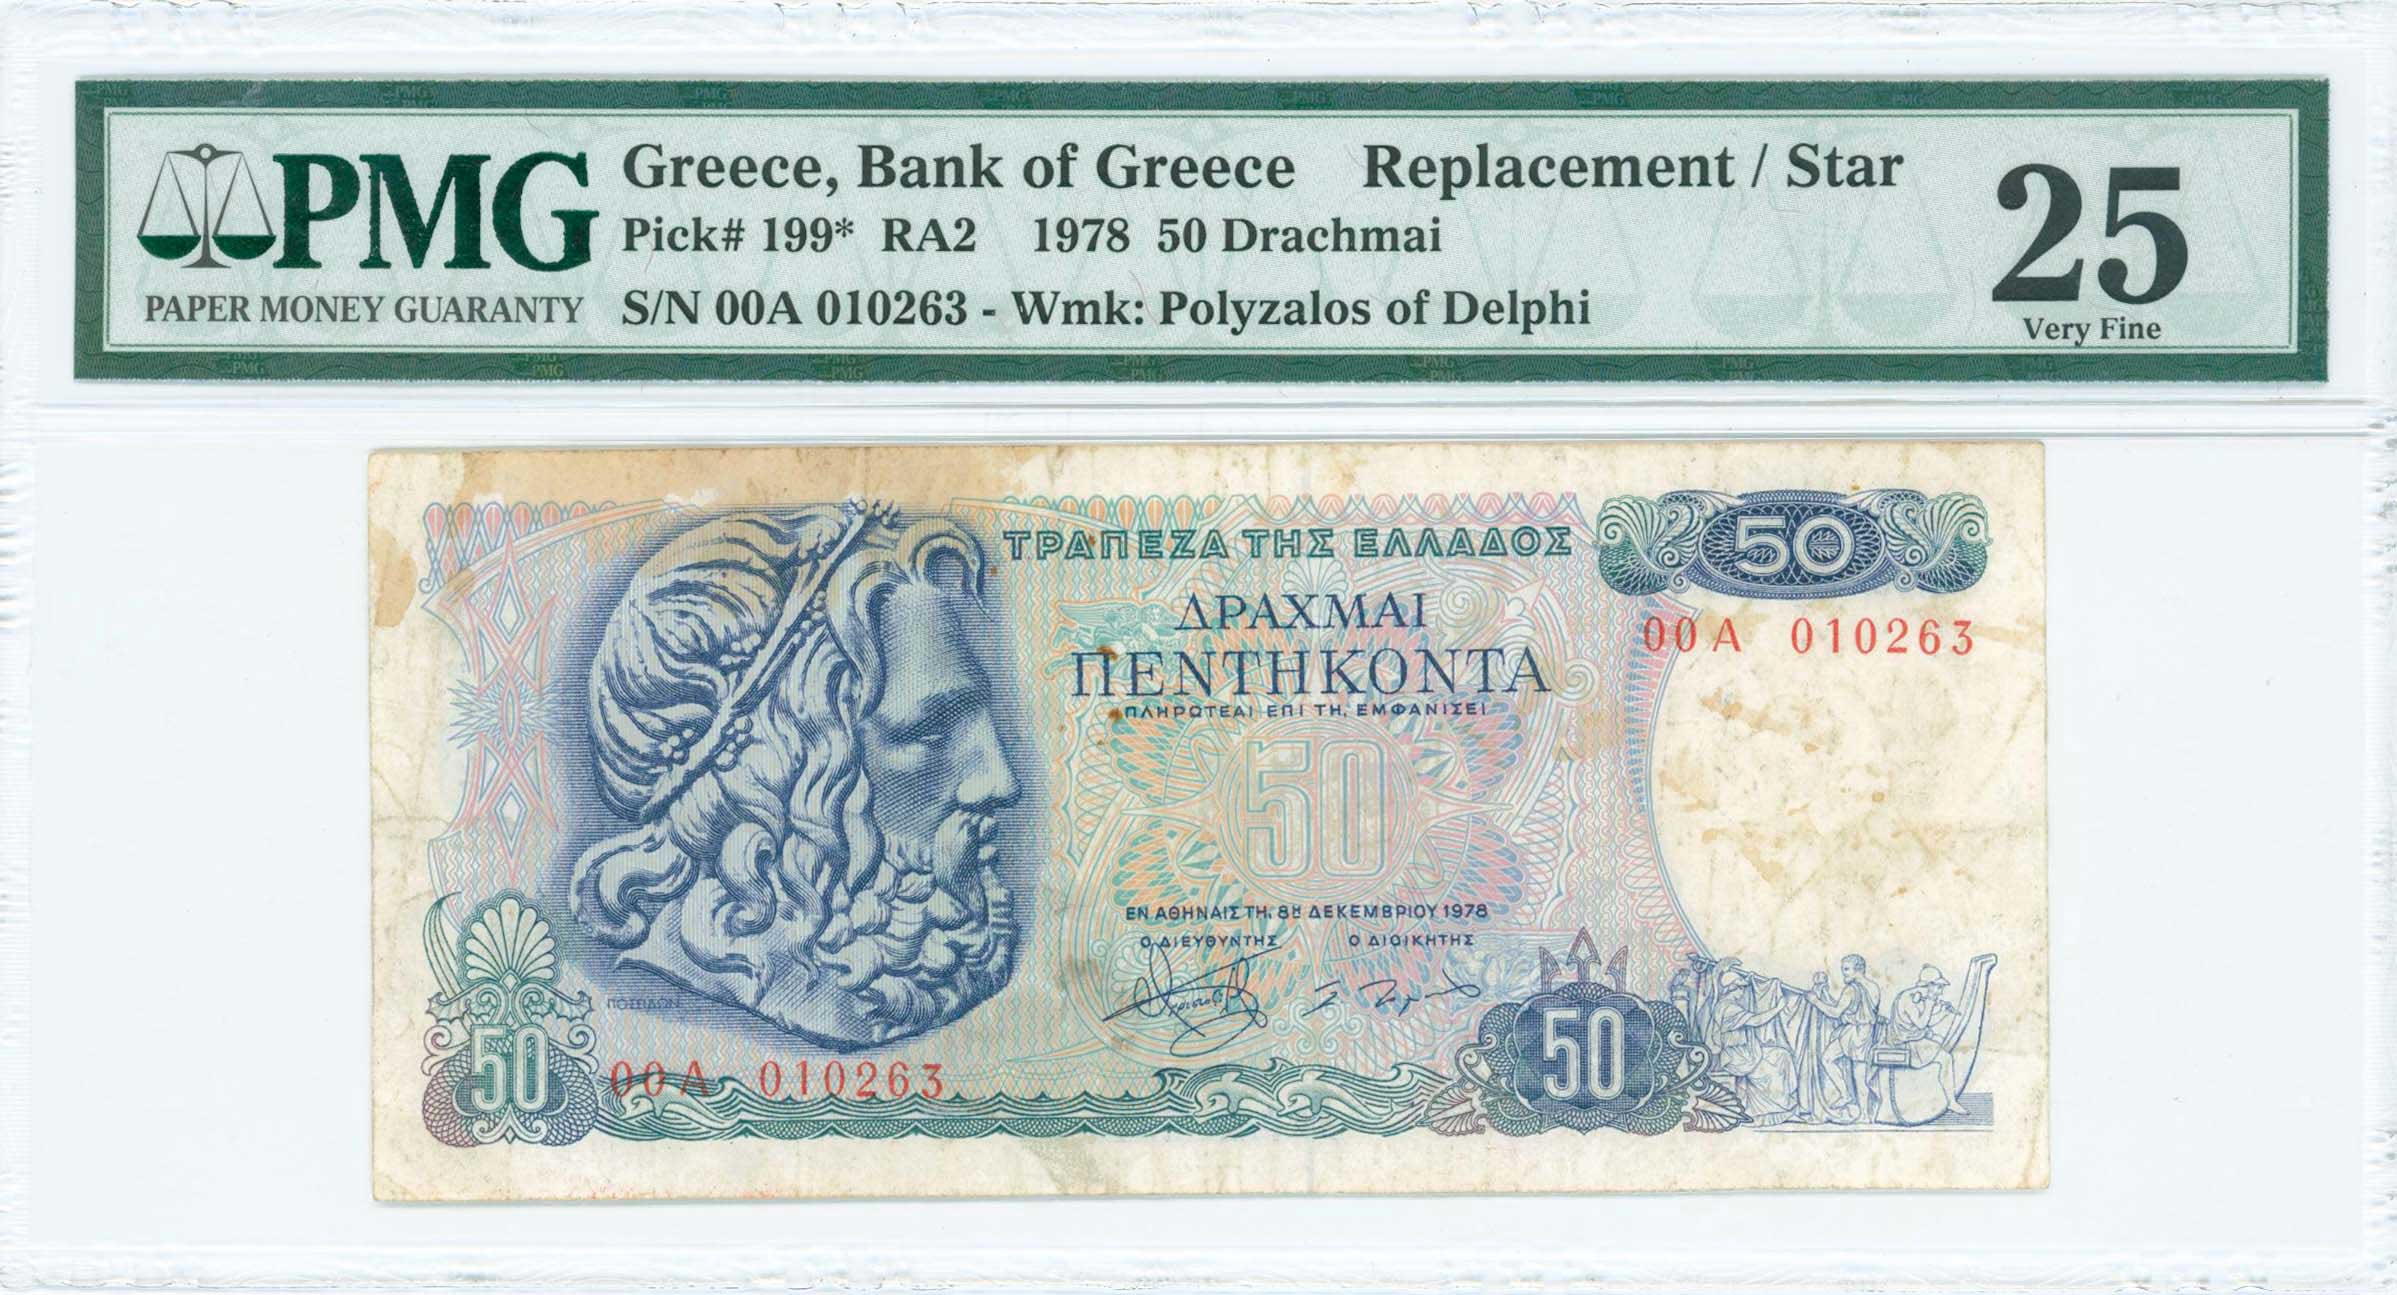 Lot 6606 - -  PAPER MONEY - BANKNOTES BANK OF GREECE AFTER WWII -  A. Karamitsos Public & Live Internet Auction 671 (Part A)